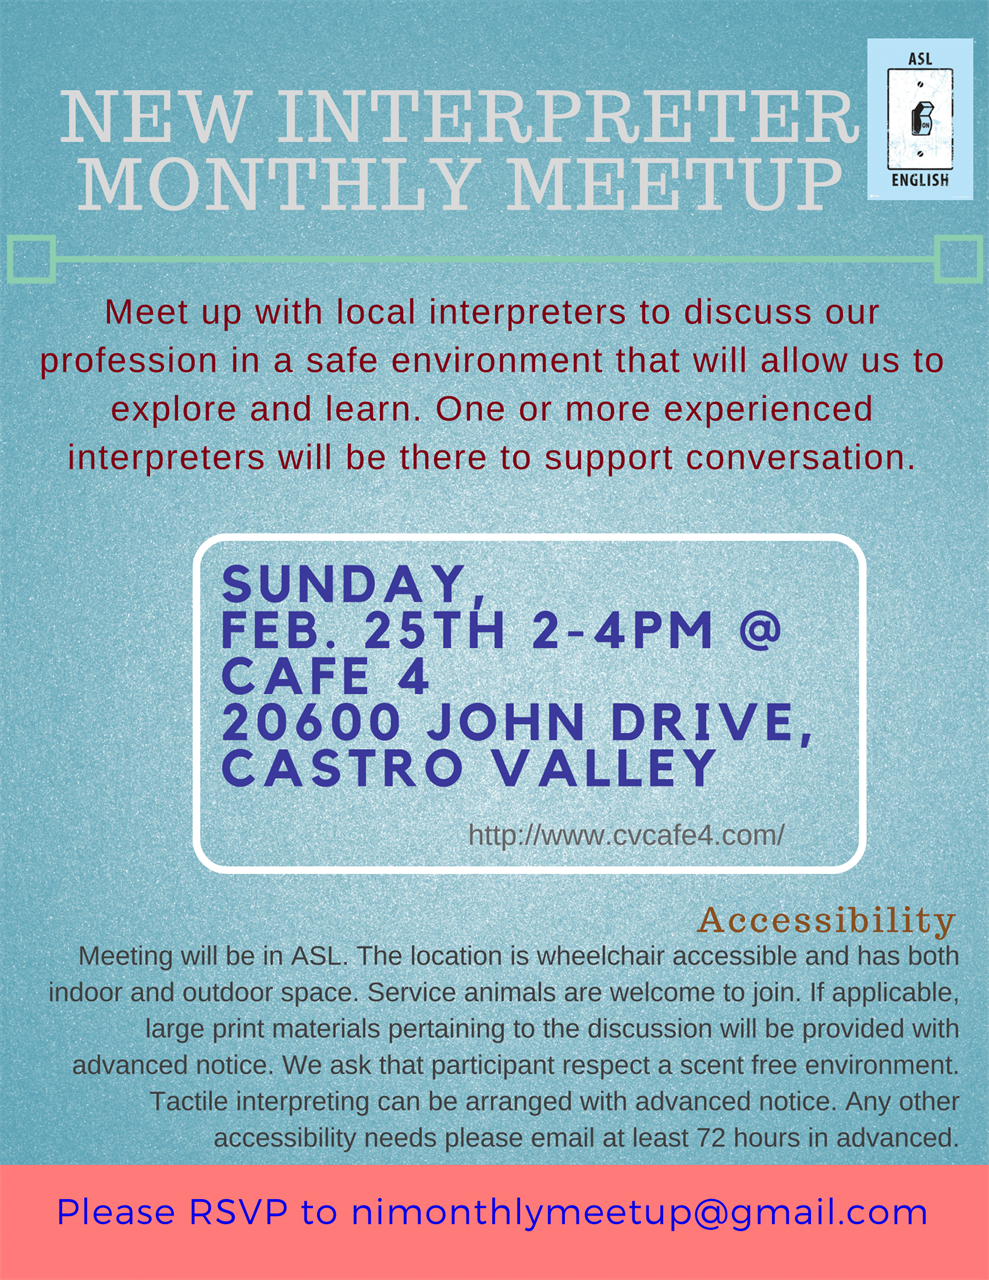 New Interpreter Monthly Meetup Flyer. All flyer text in linked event.